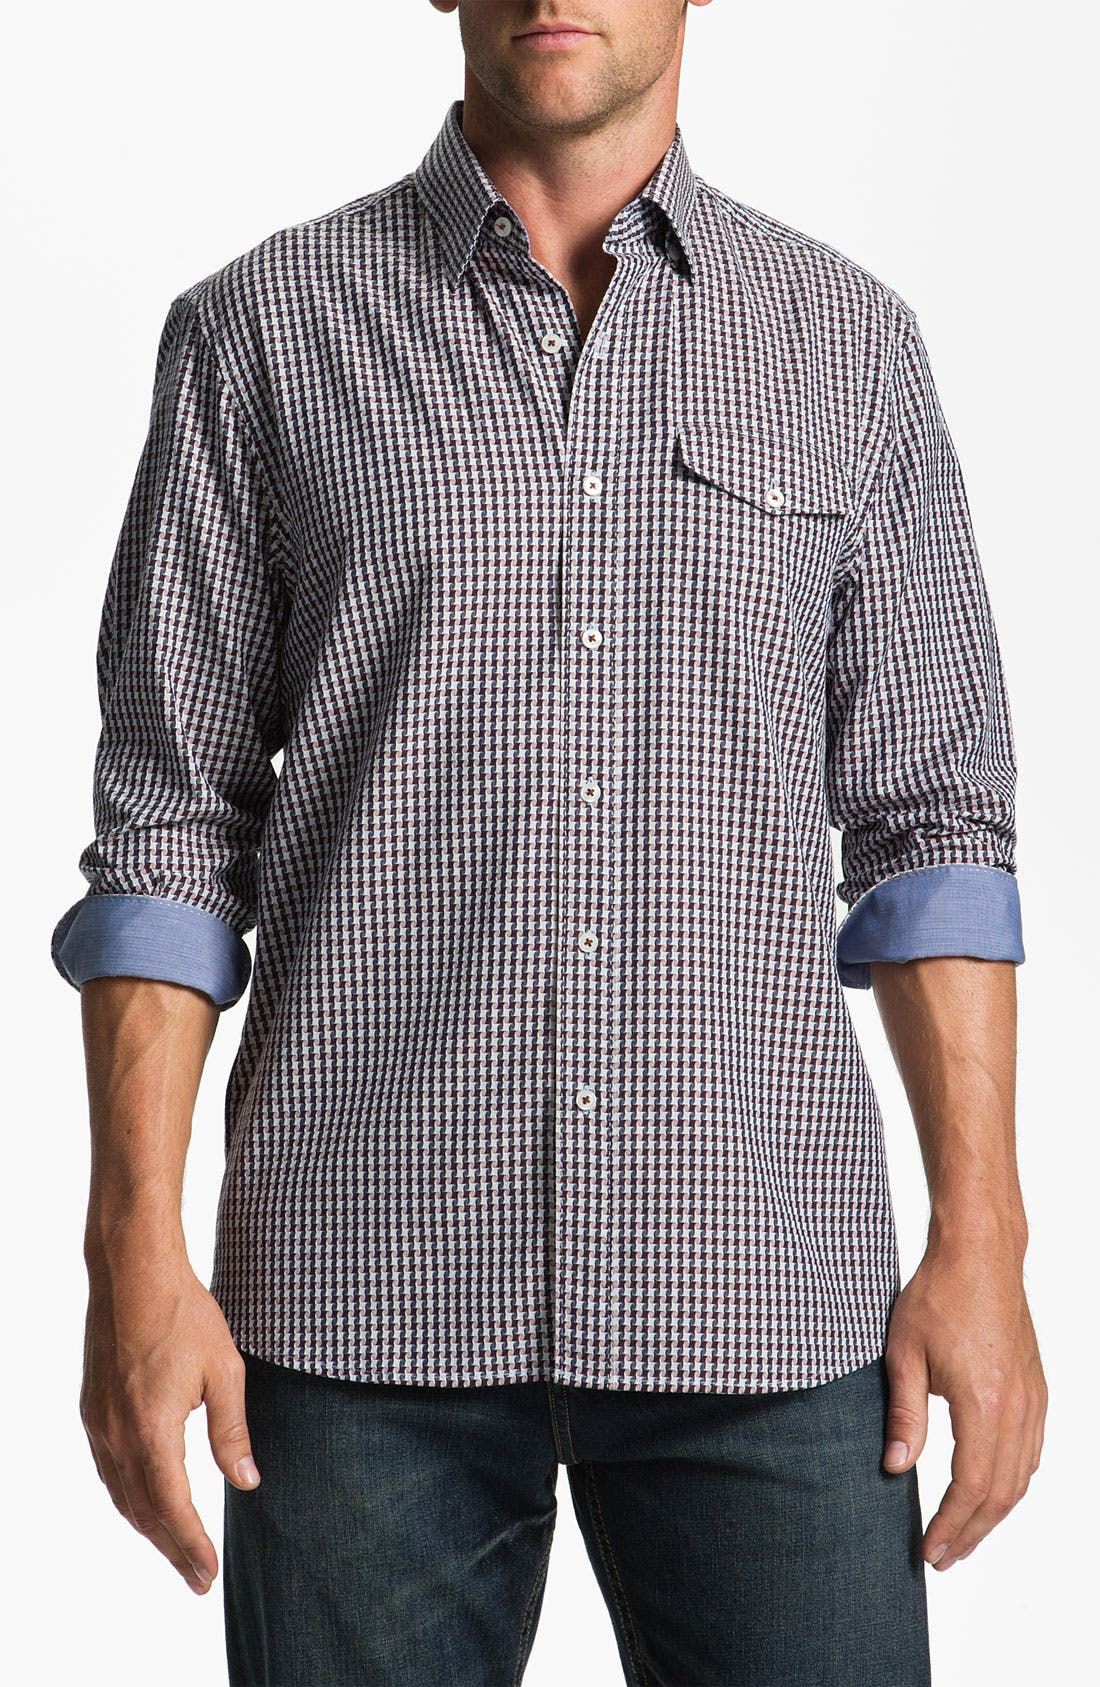 Main Image - Tommy Bahama 'Lost 'N Hounds' Sport Shirt